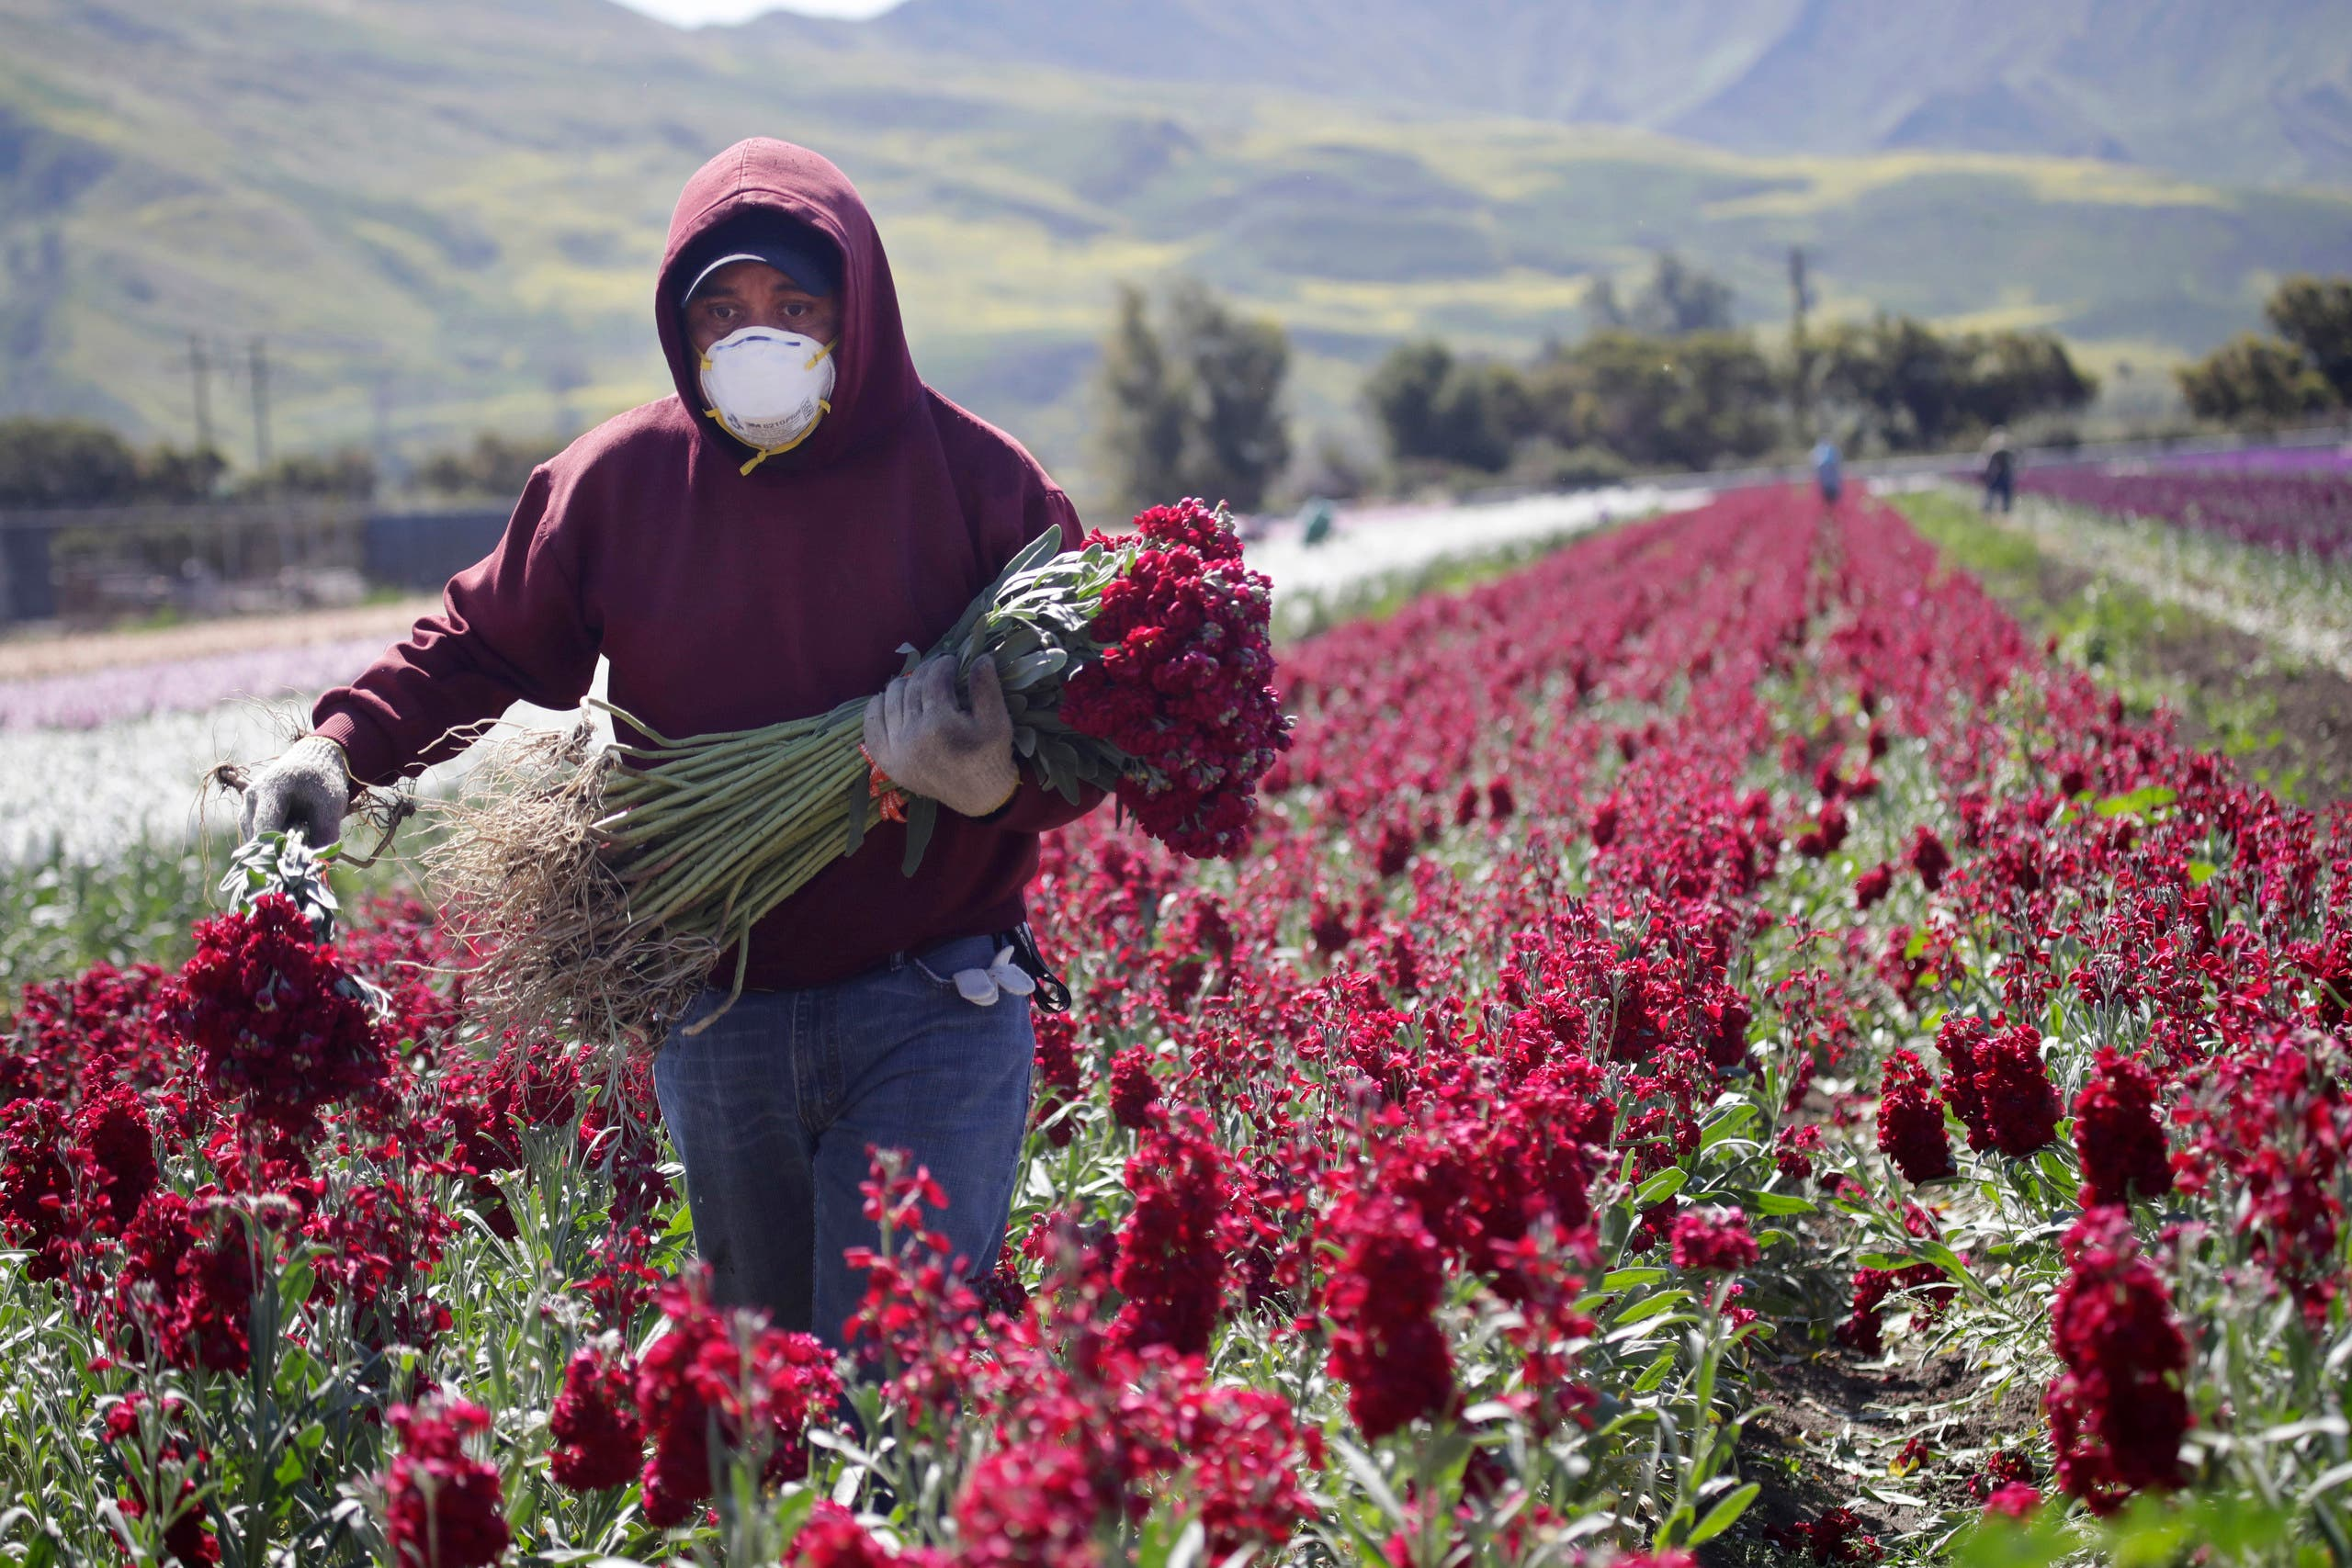 A farmworker, considered an essential worker under the current COVID-19 pandemic guidelines, wears a mask as he works at a flower farm Wednesday, April 15, 2020, in Santa Paula, California. (AP)